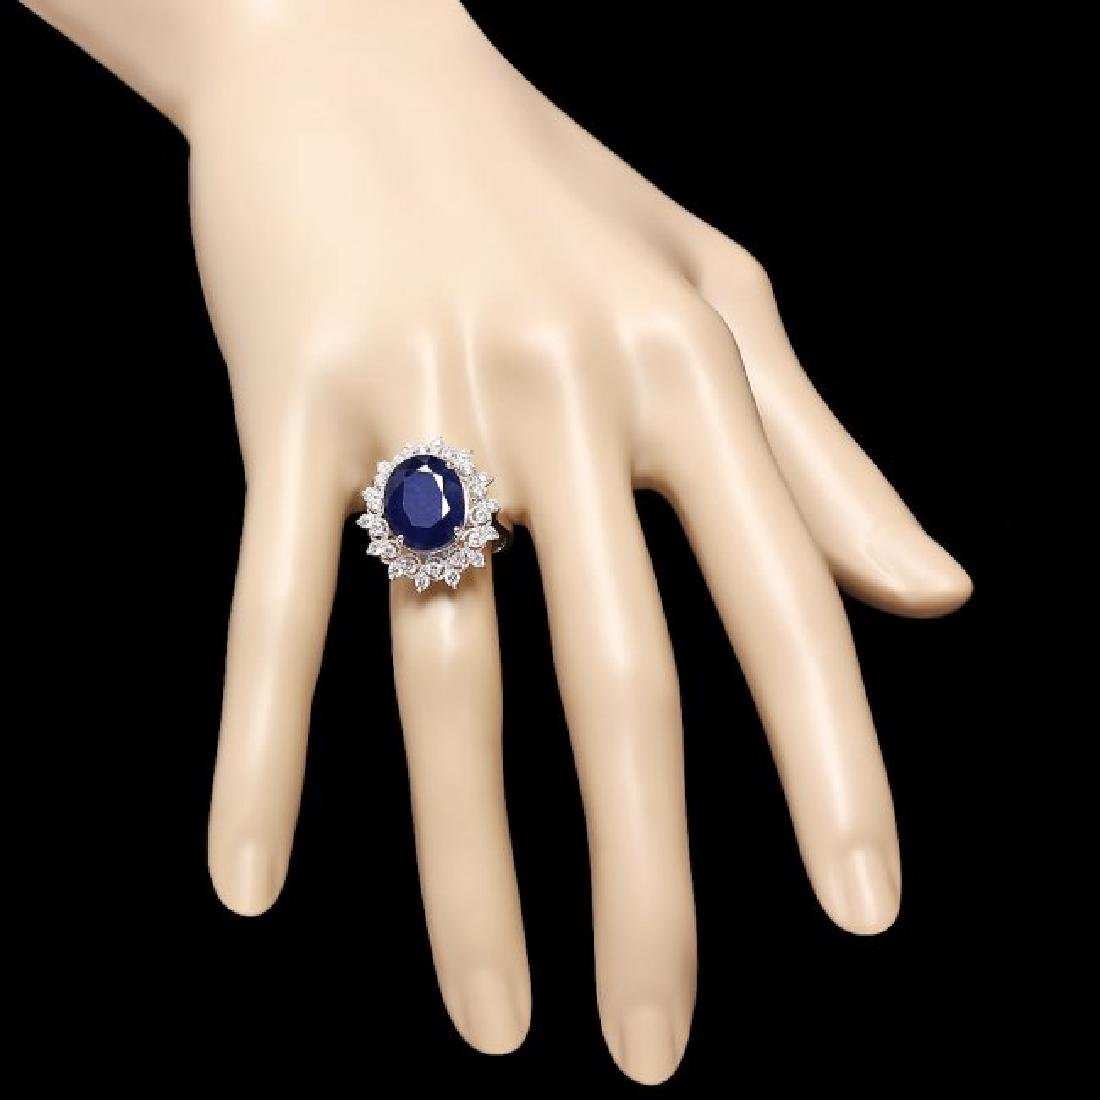 14k Gold 7.00ct Sapphire 0.80ct Diamond Ring - 4